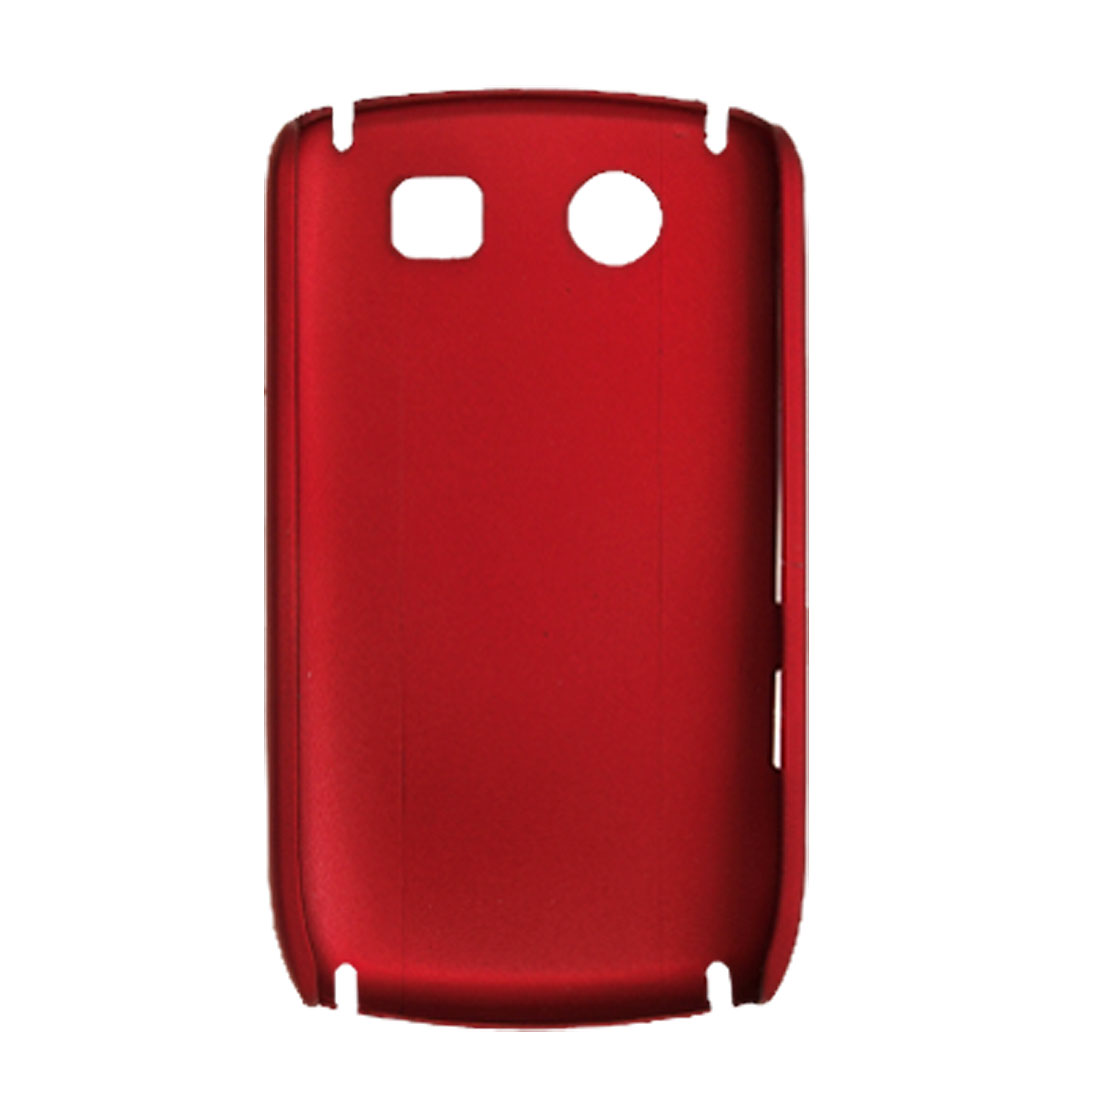 Red Hard Plastic Case Protector for Blackberry 8900 9300